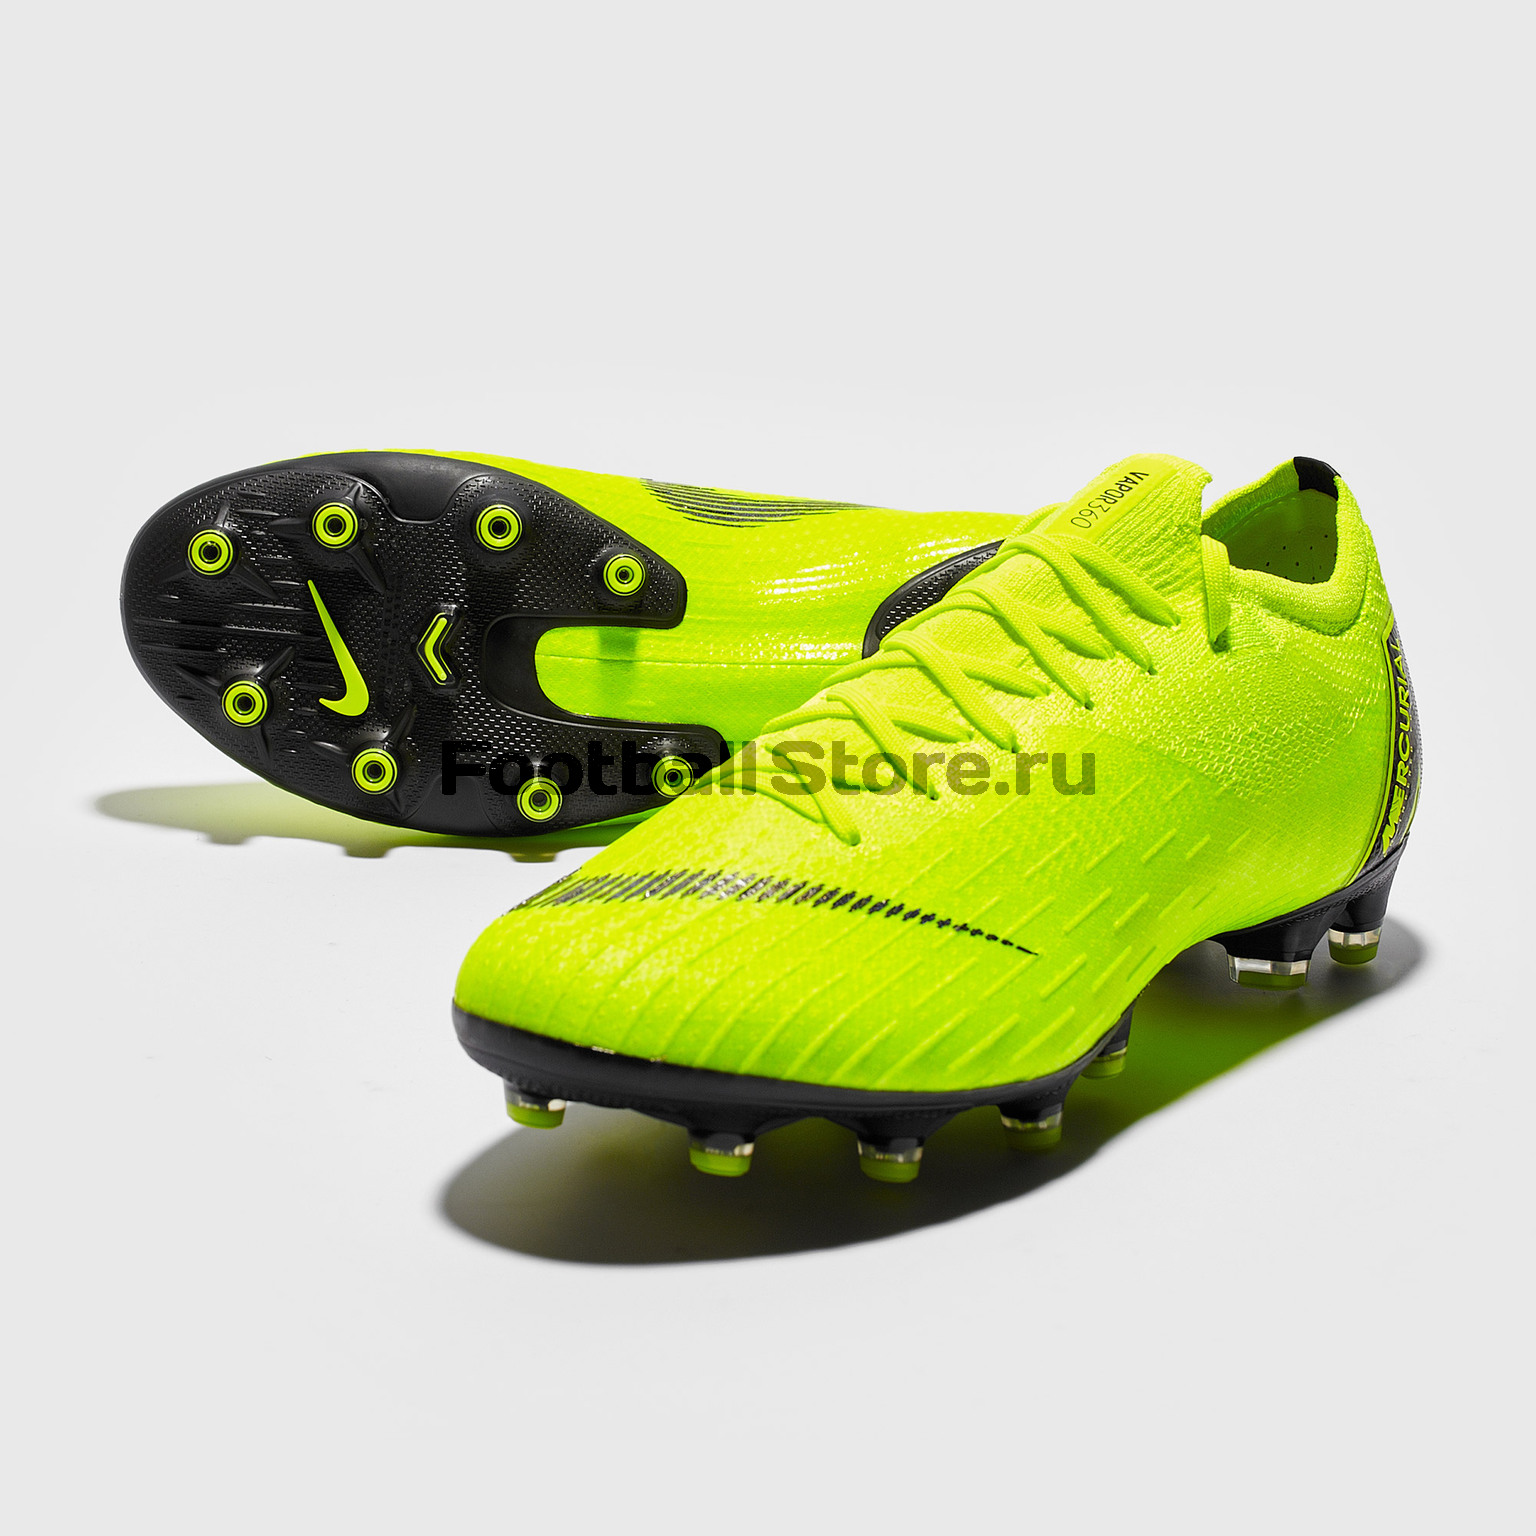 Бутсы Nike Vapor 12 Elite AG-Pro AH7379-701 nike vapor pro low d men s detachable football cleats